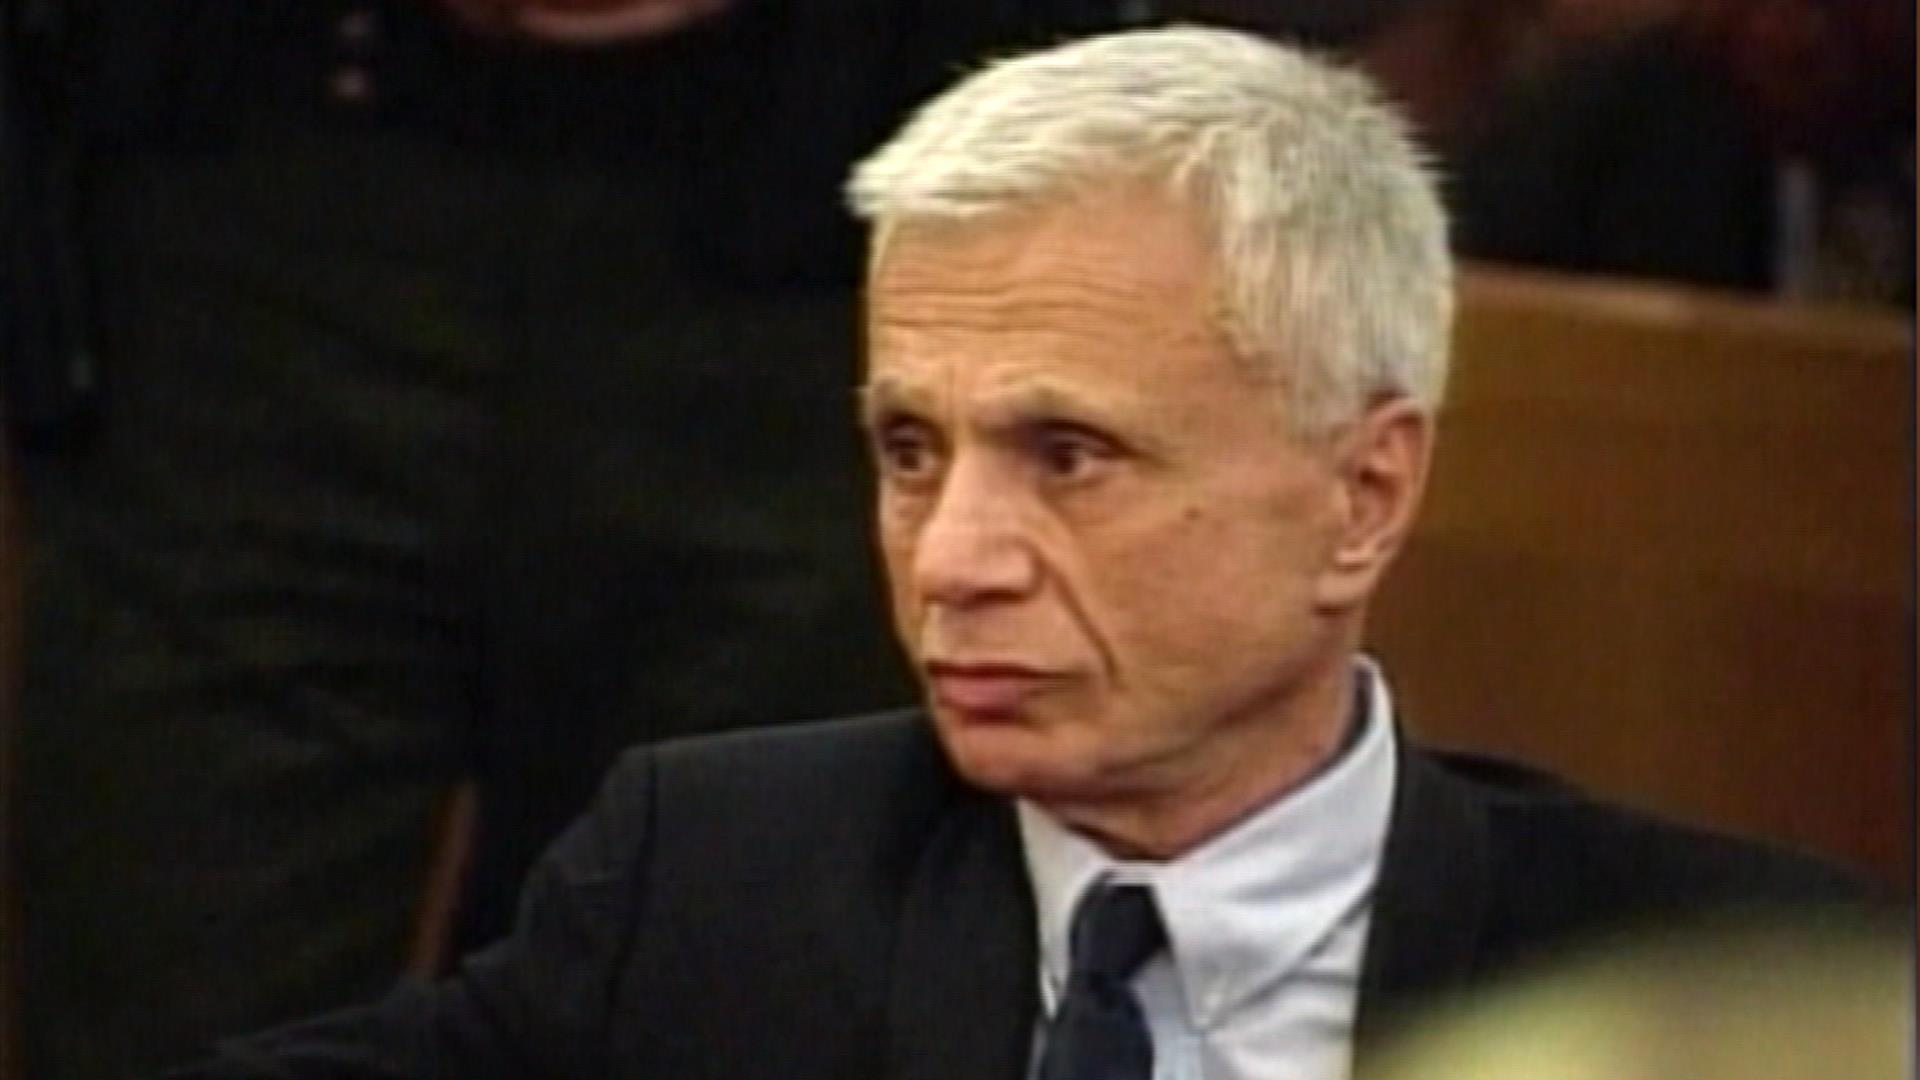 2005: Actor Robert Blake Acquitted of Wife's Slaying